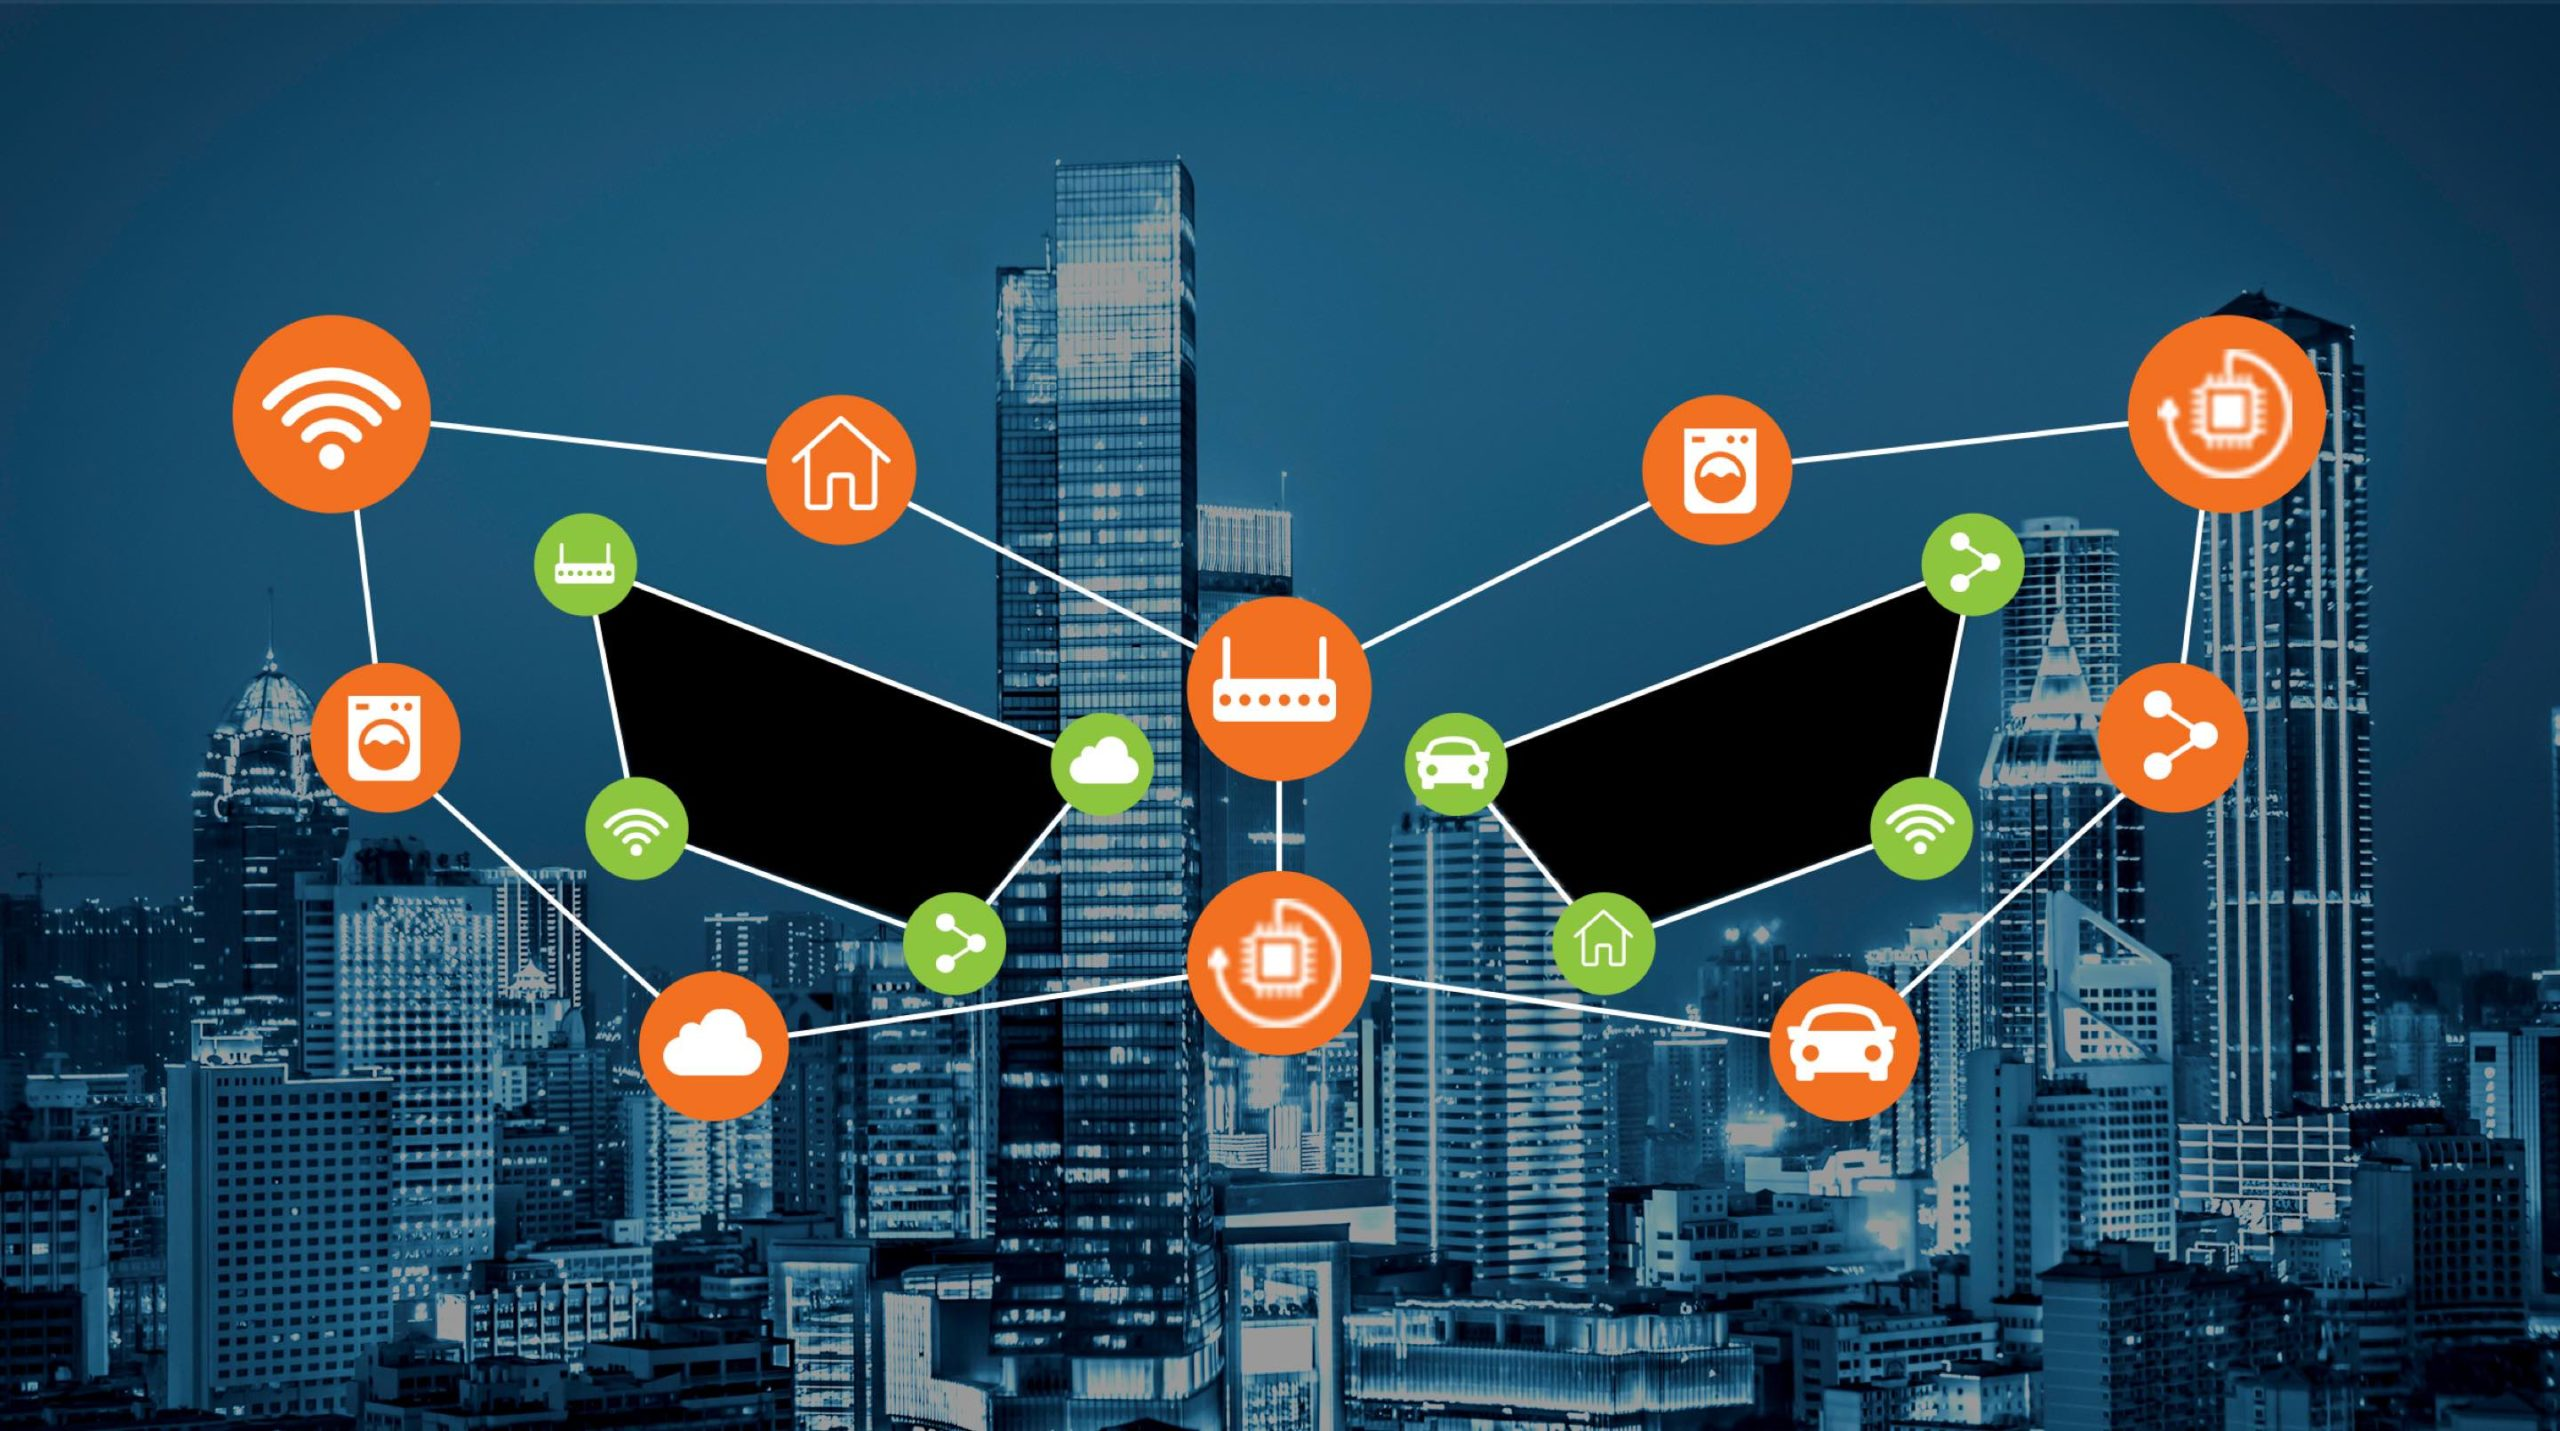 blog-banner-6-reasons-to-believe-in-superpowers-again-thanks-to-IoT